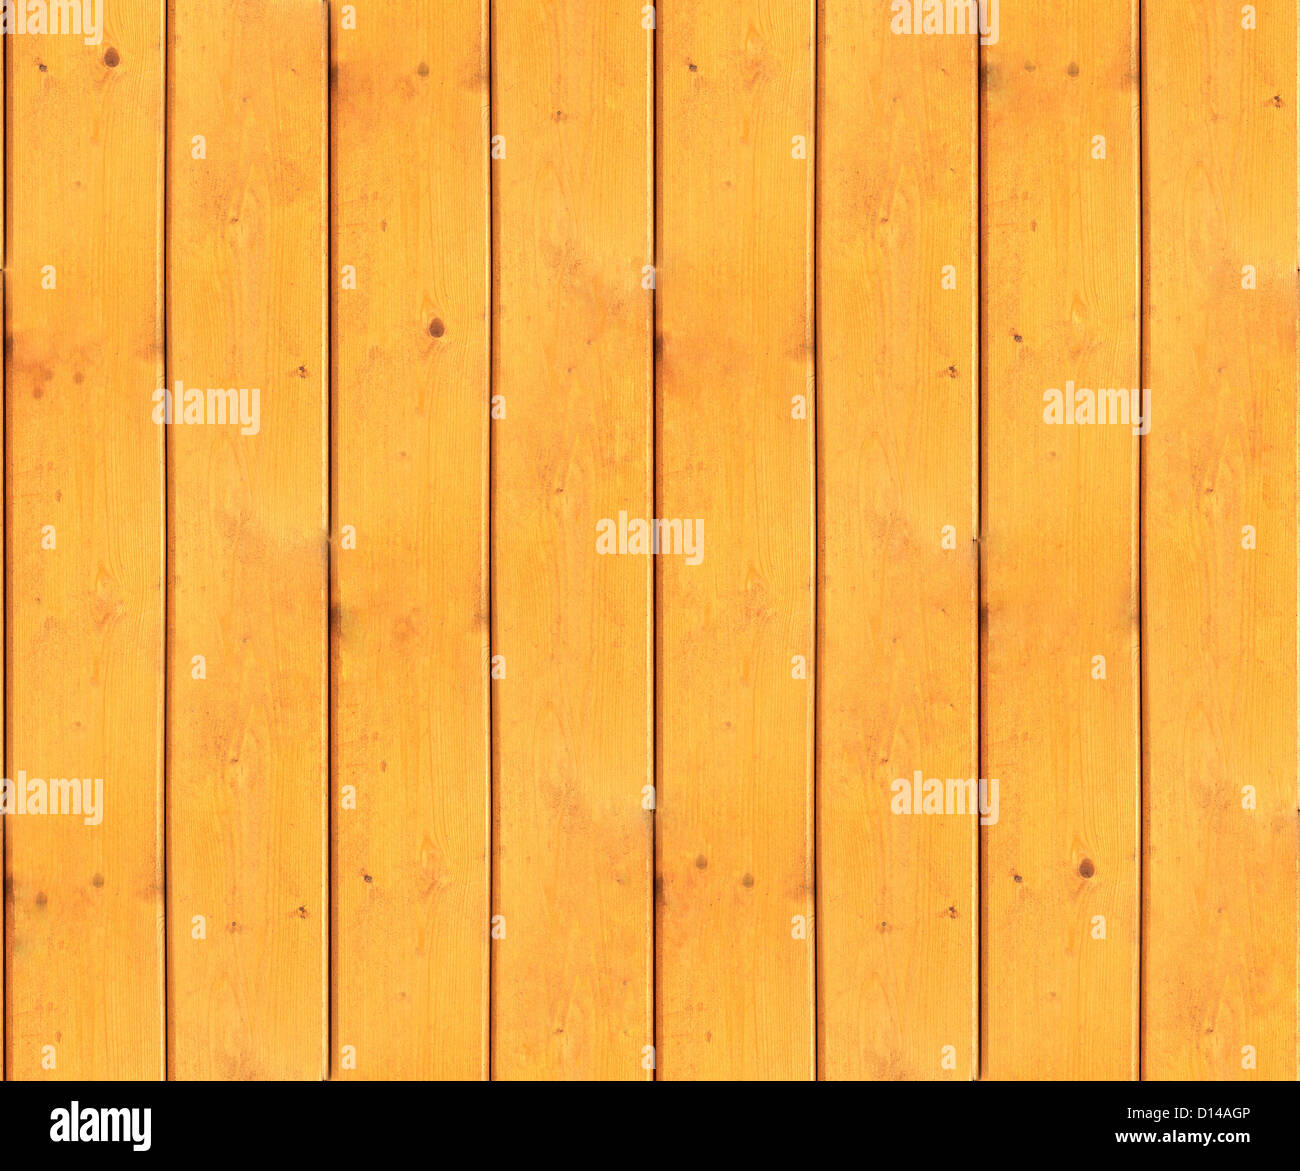 picket fence texture. Perfect Fence Picket Fence Made Of Pine Wood As A Seamless Tileable Texture For Fence Texture